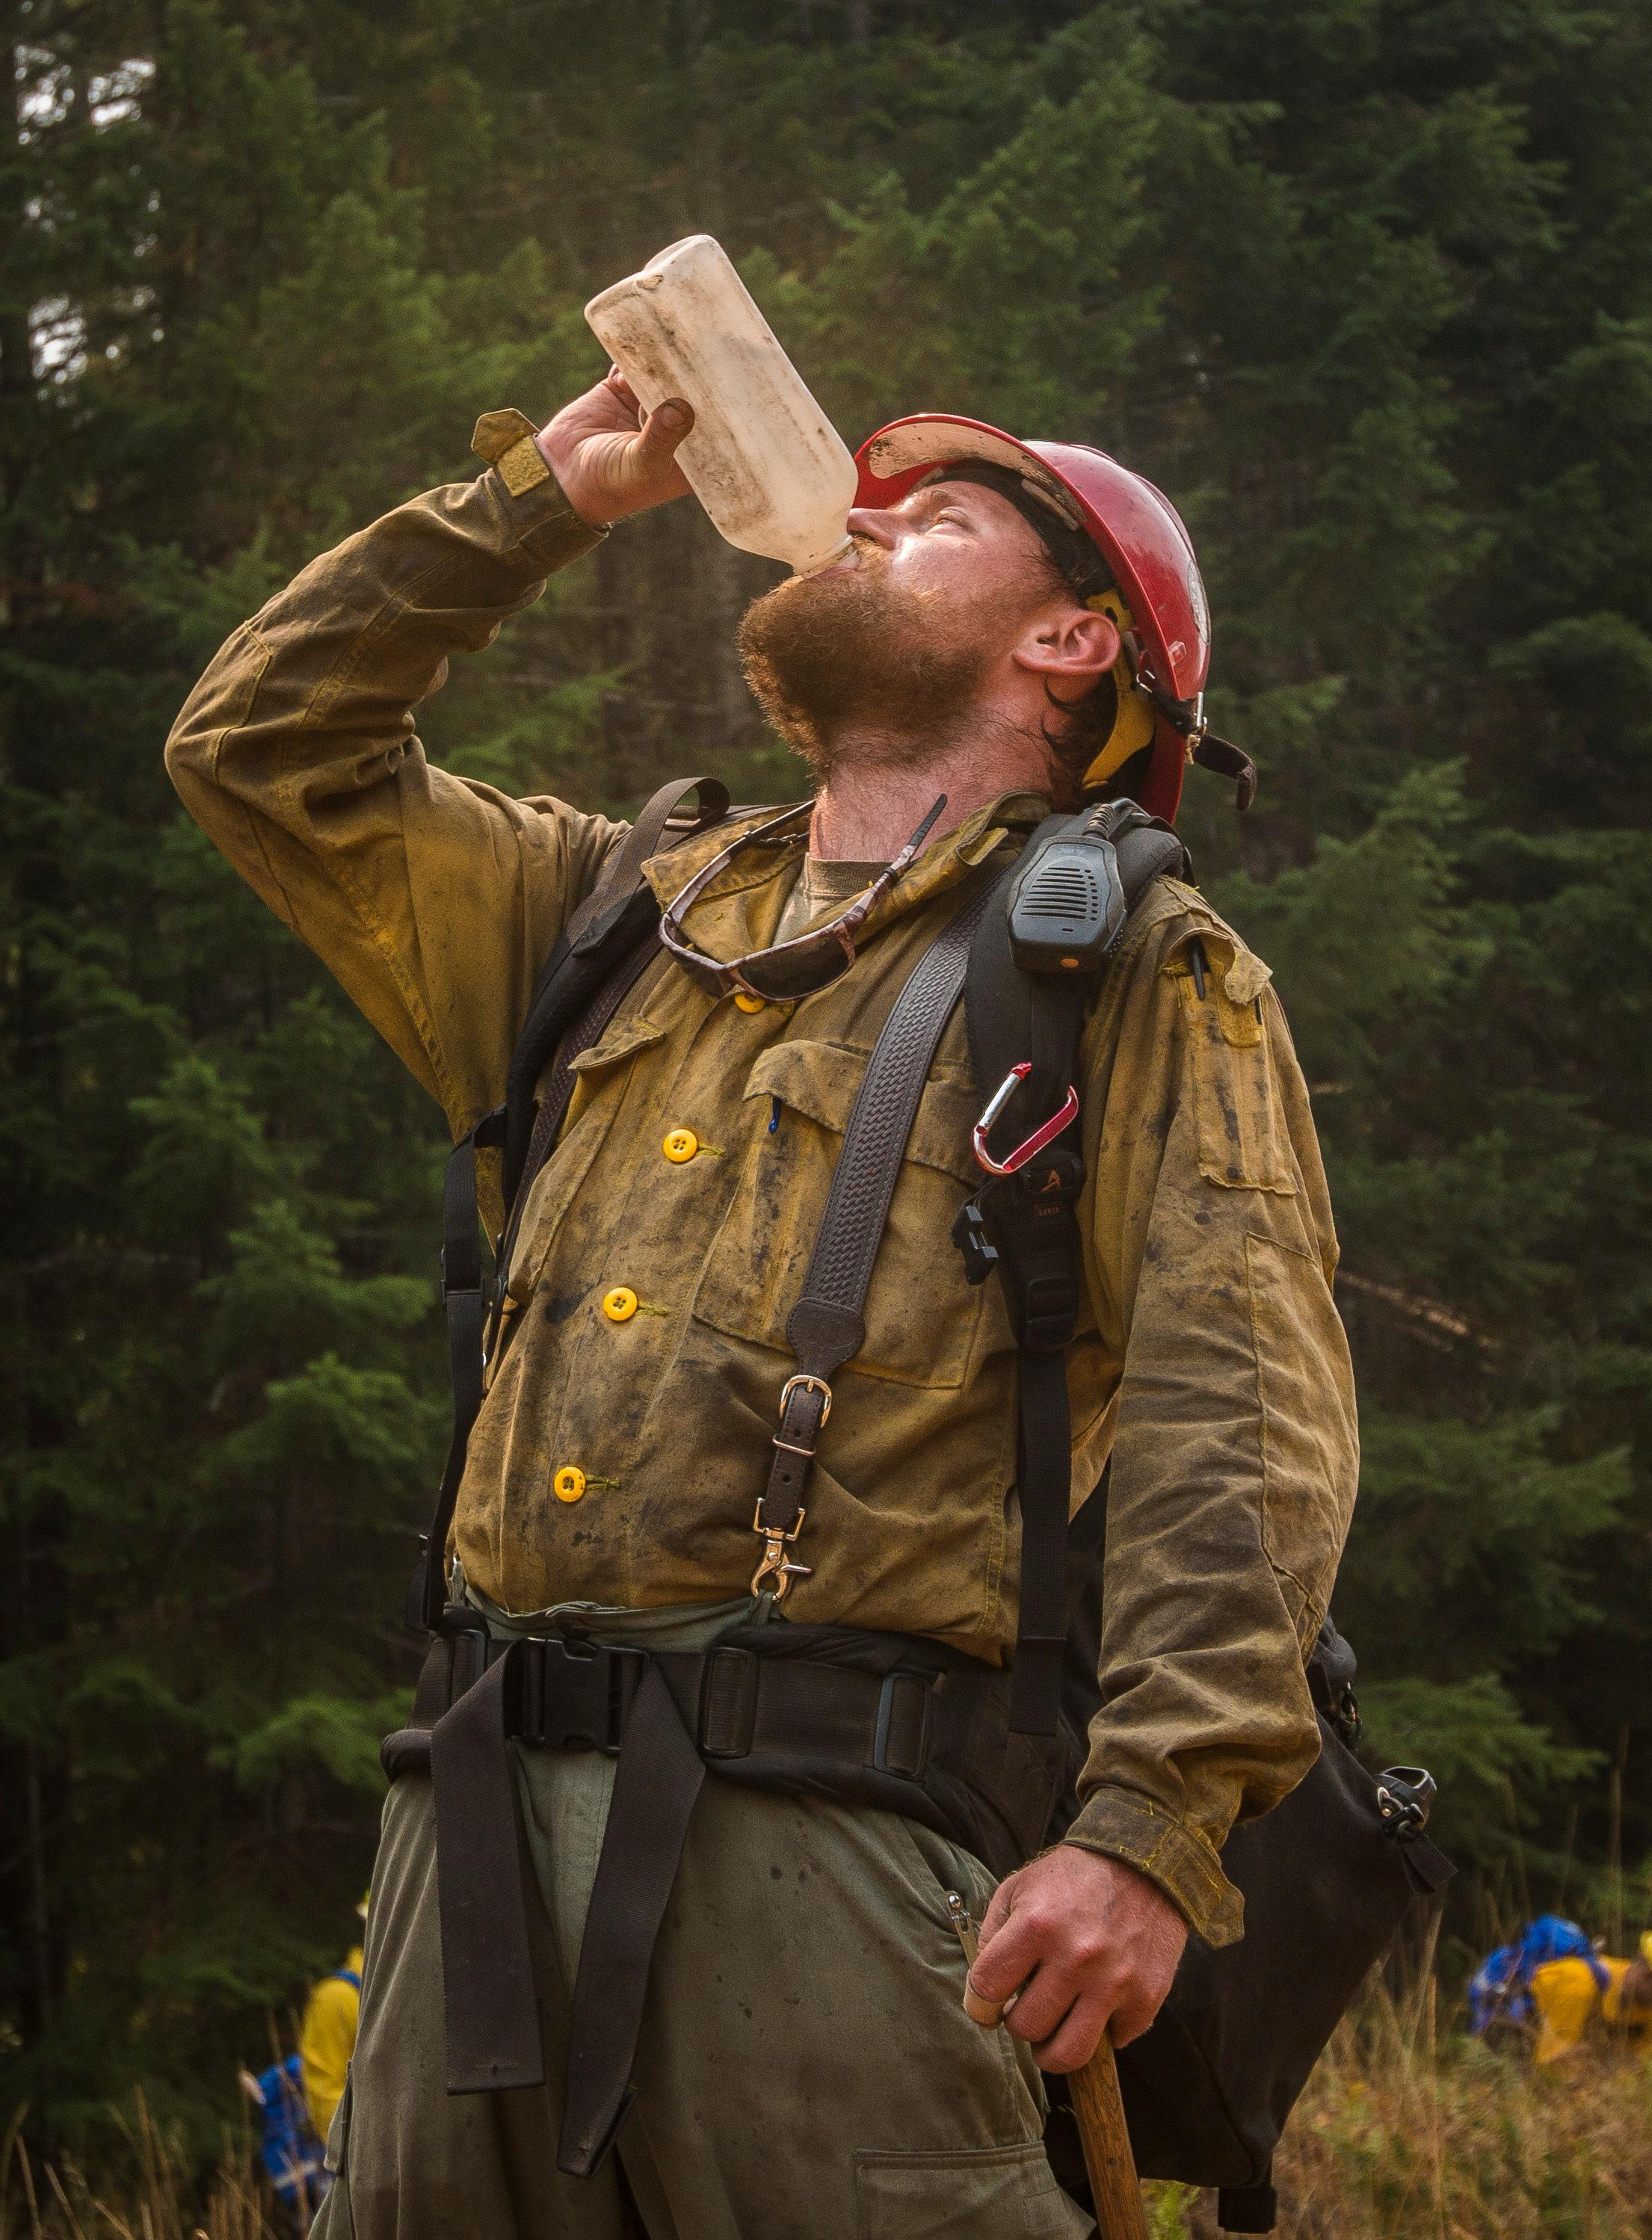 Zane Willert, a firefighter with the Devil's Canyon Handcrew, stays hydrated while supervising tactical training with the Soldiers assigned to 23rd Brigade Engineer Battalion, 1-2 Stryker Brigade Combat Team, Umpqua North Complex, Oregon, Sept. 8. When not fighting the flames during wildfire season, Willert is a cattle rancher in Wyoming. (U.S. Army photo by Pvt. Adeline Witherspoon, 20th Public Affairs Detachment)